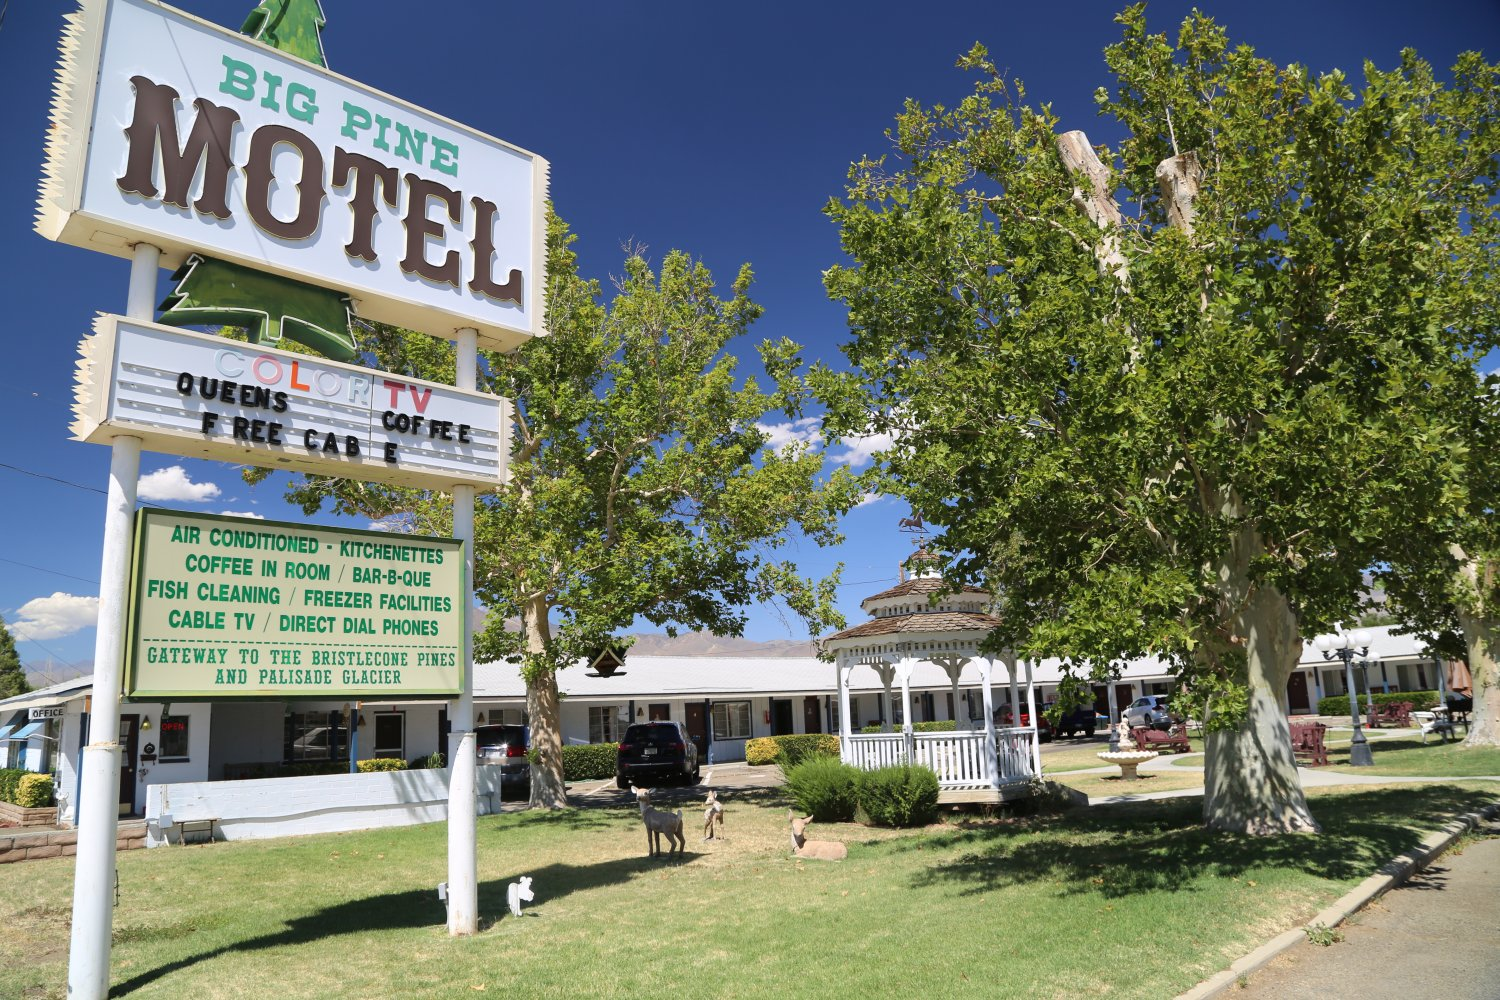 Pine Motel Is Located At 370 South Main Street And They Are Rated 2 Stars 14 Rooms Have A Complete Courtyard With Gazebo Benches